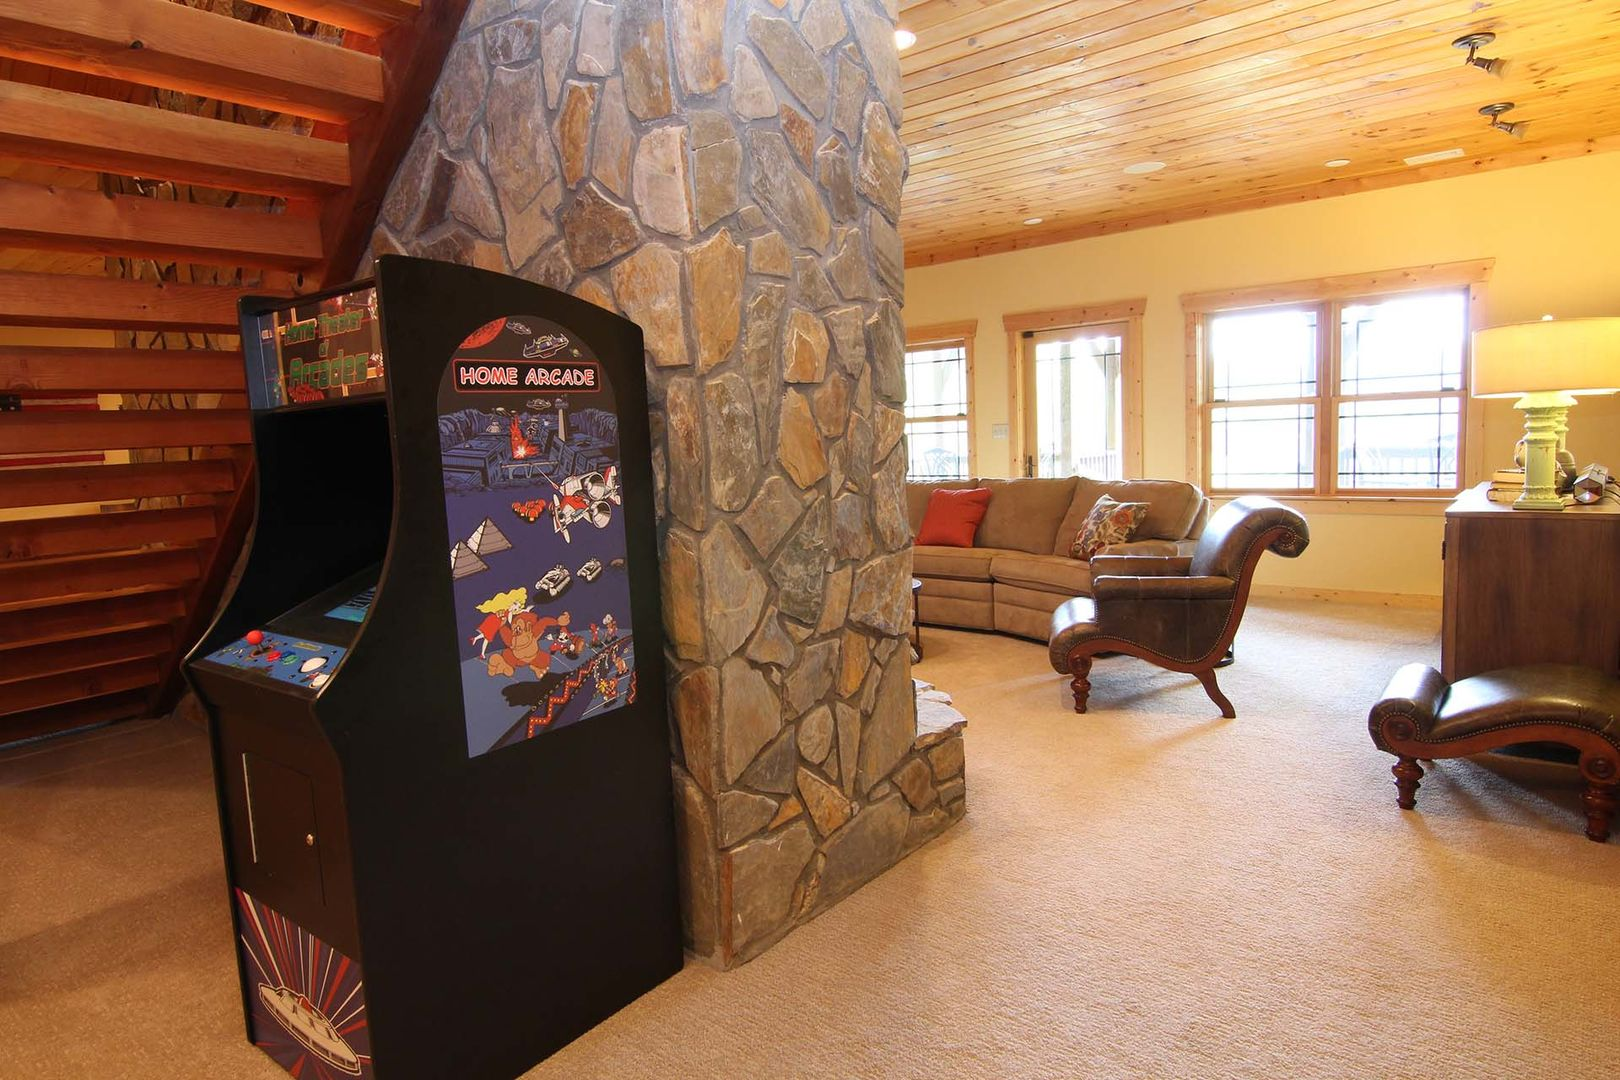 Downstairs living area with arcade game